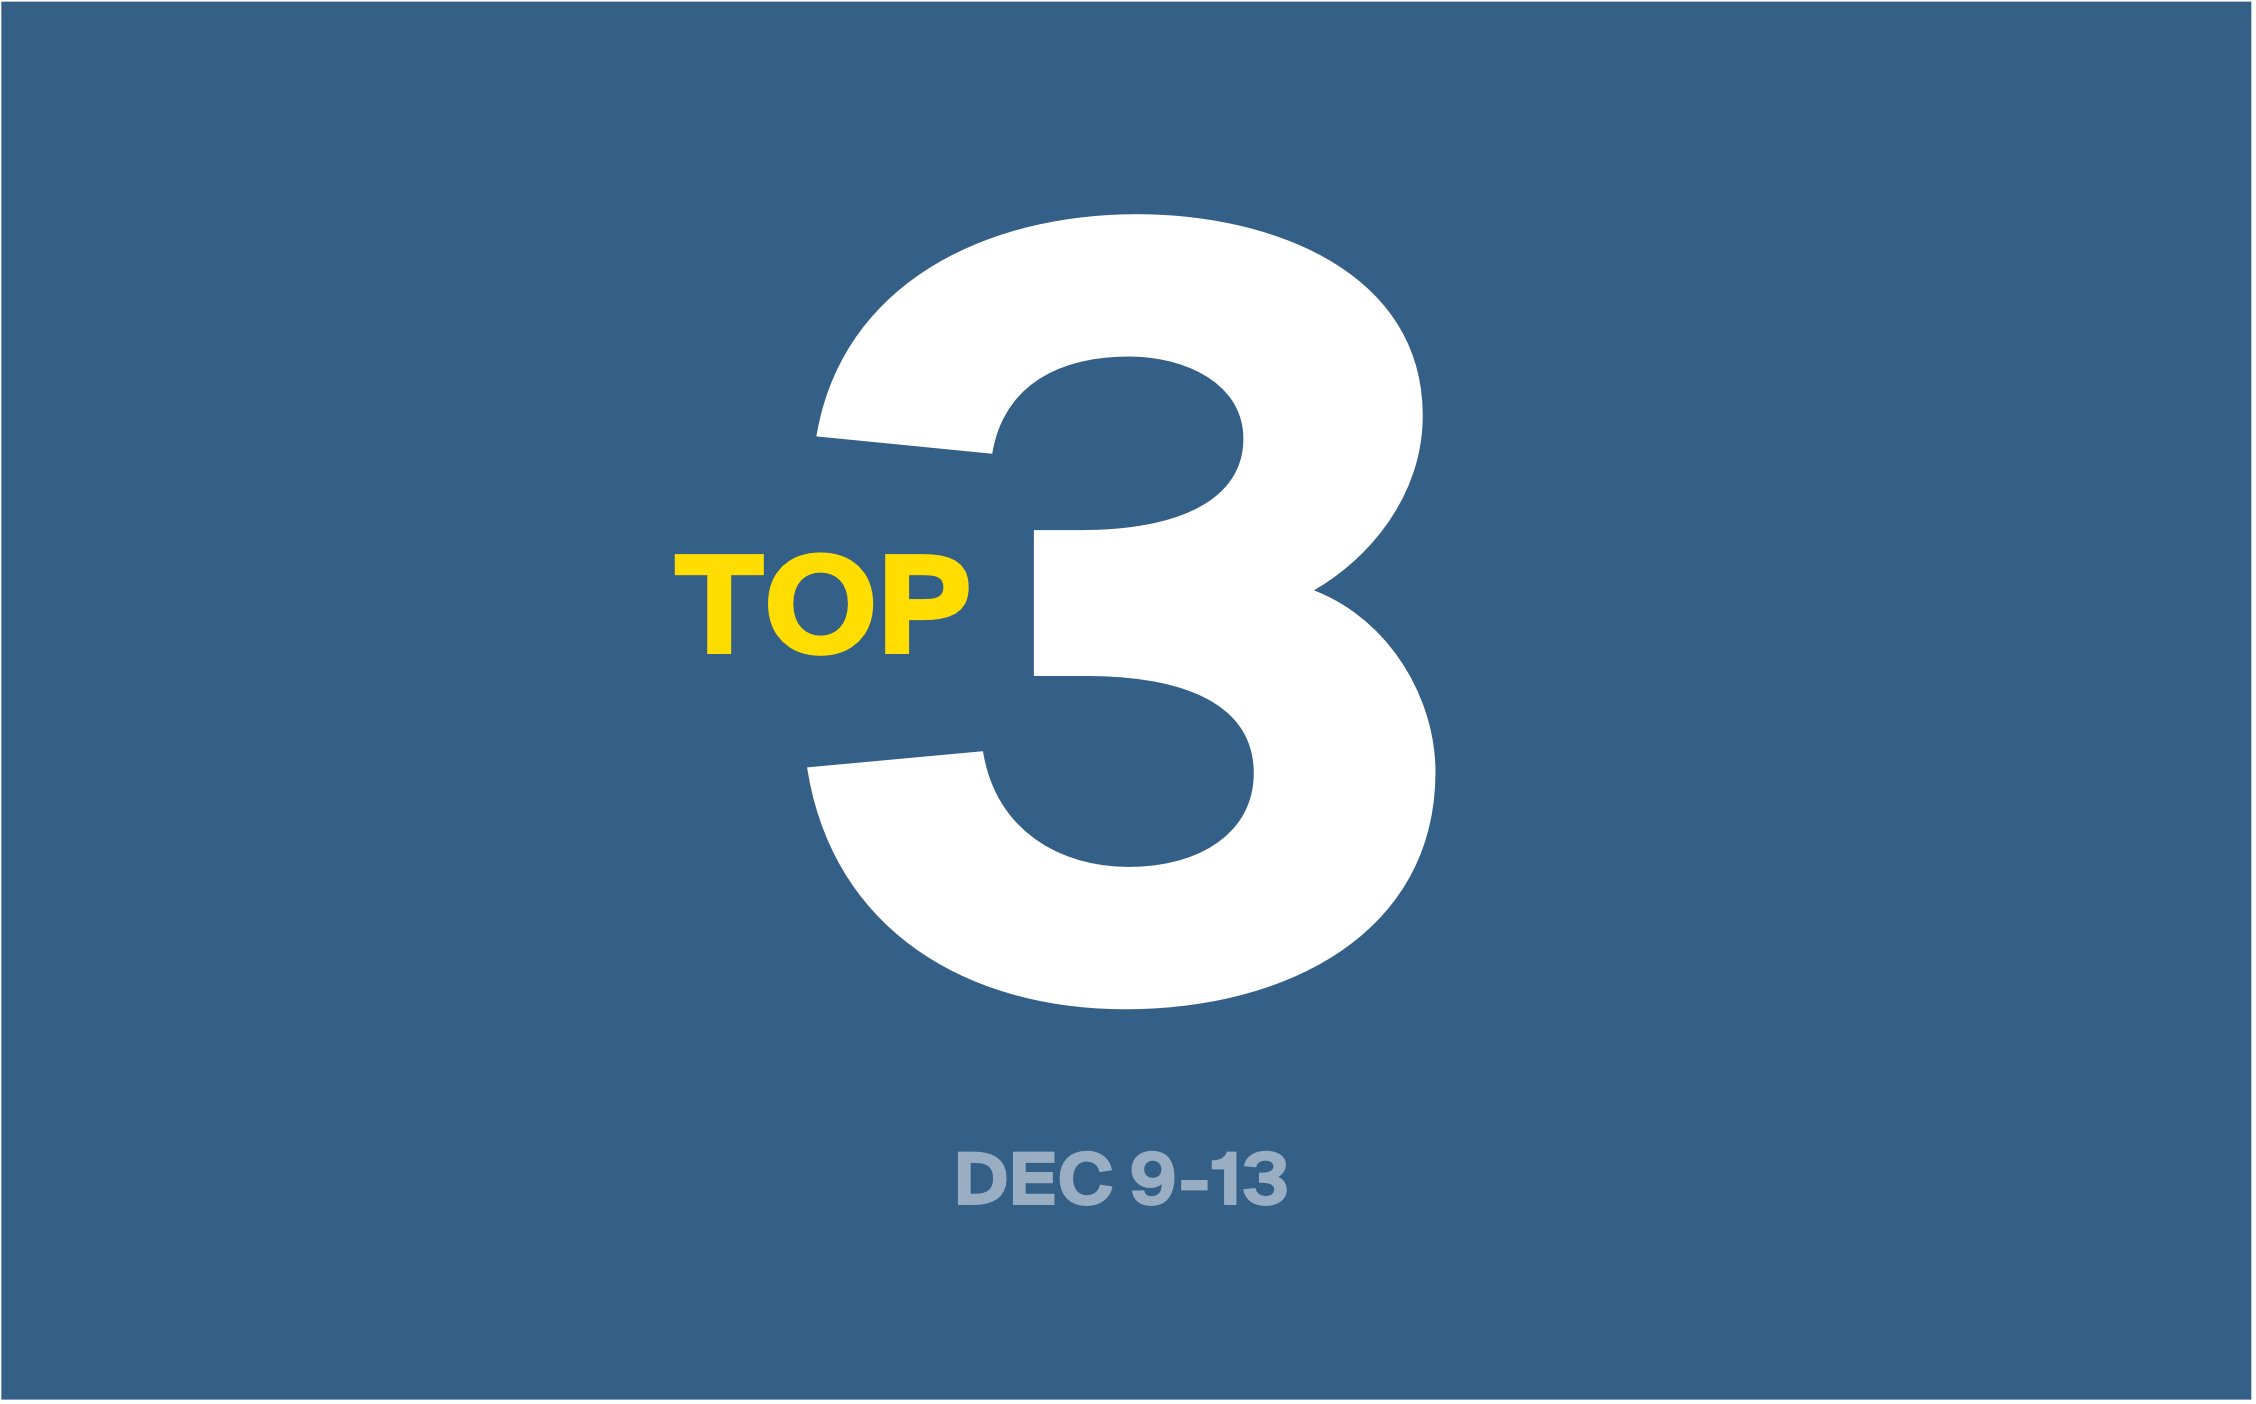 The Top 3 Private Placements Announced This Week (Dec. 9-13)